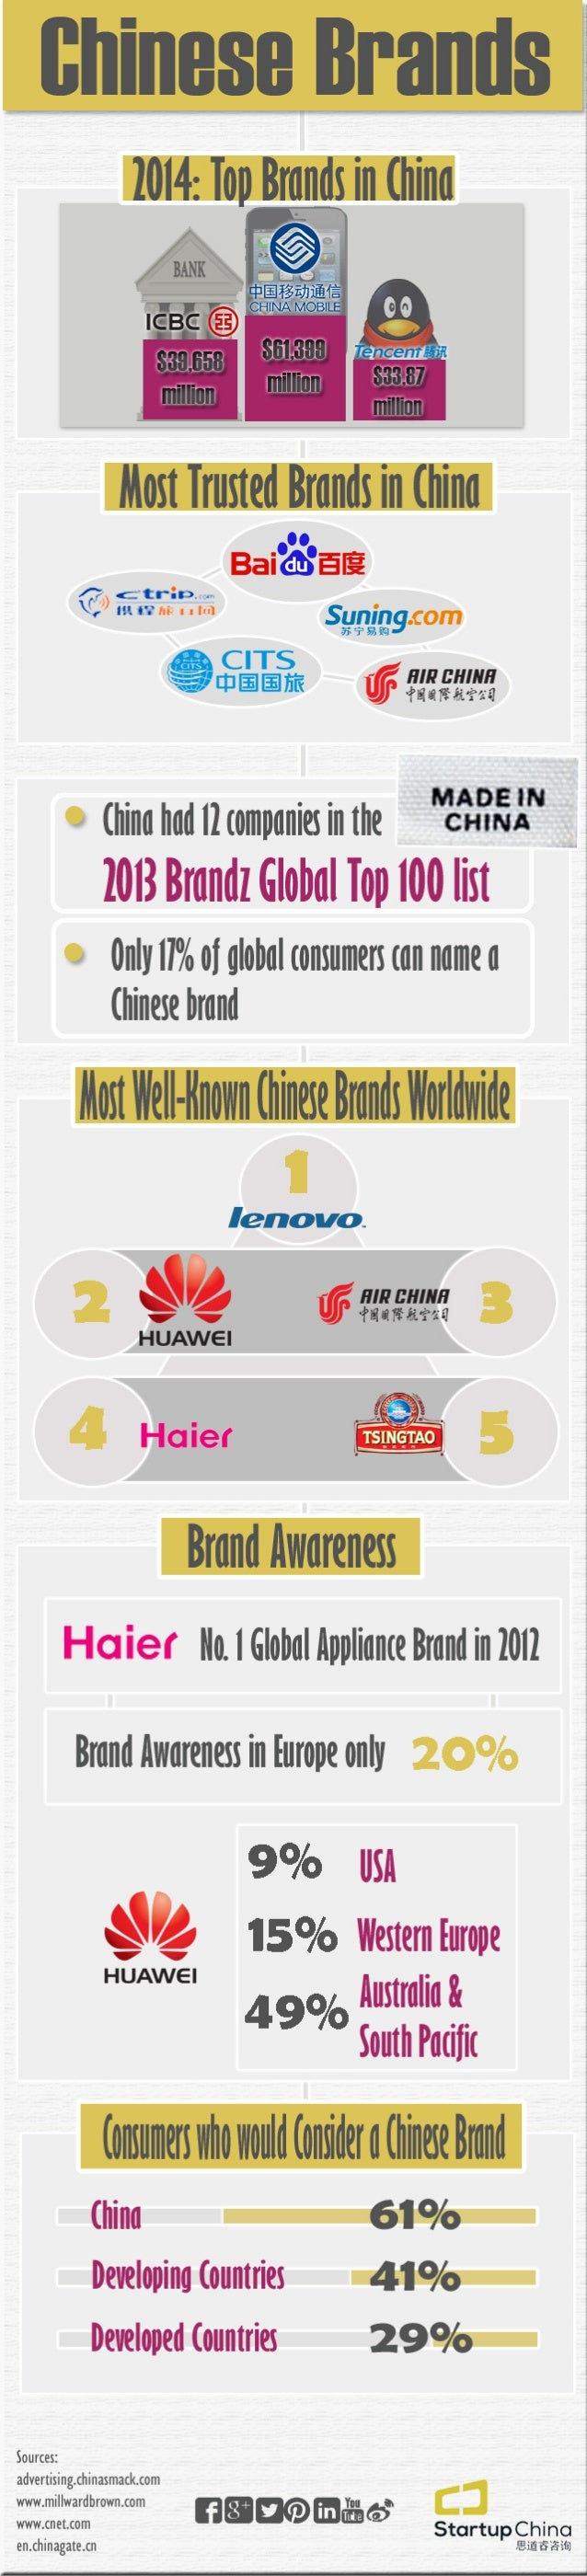 An Overview of Chinese Brands